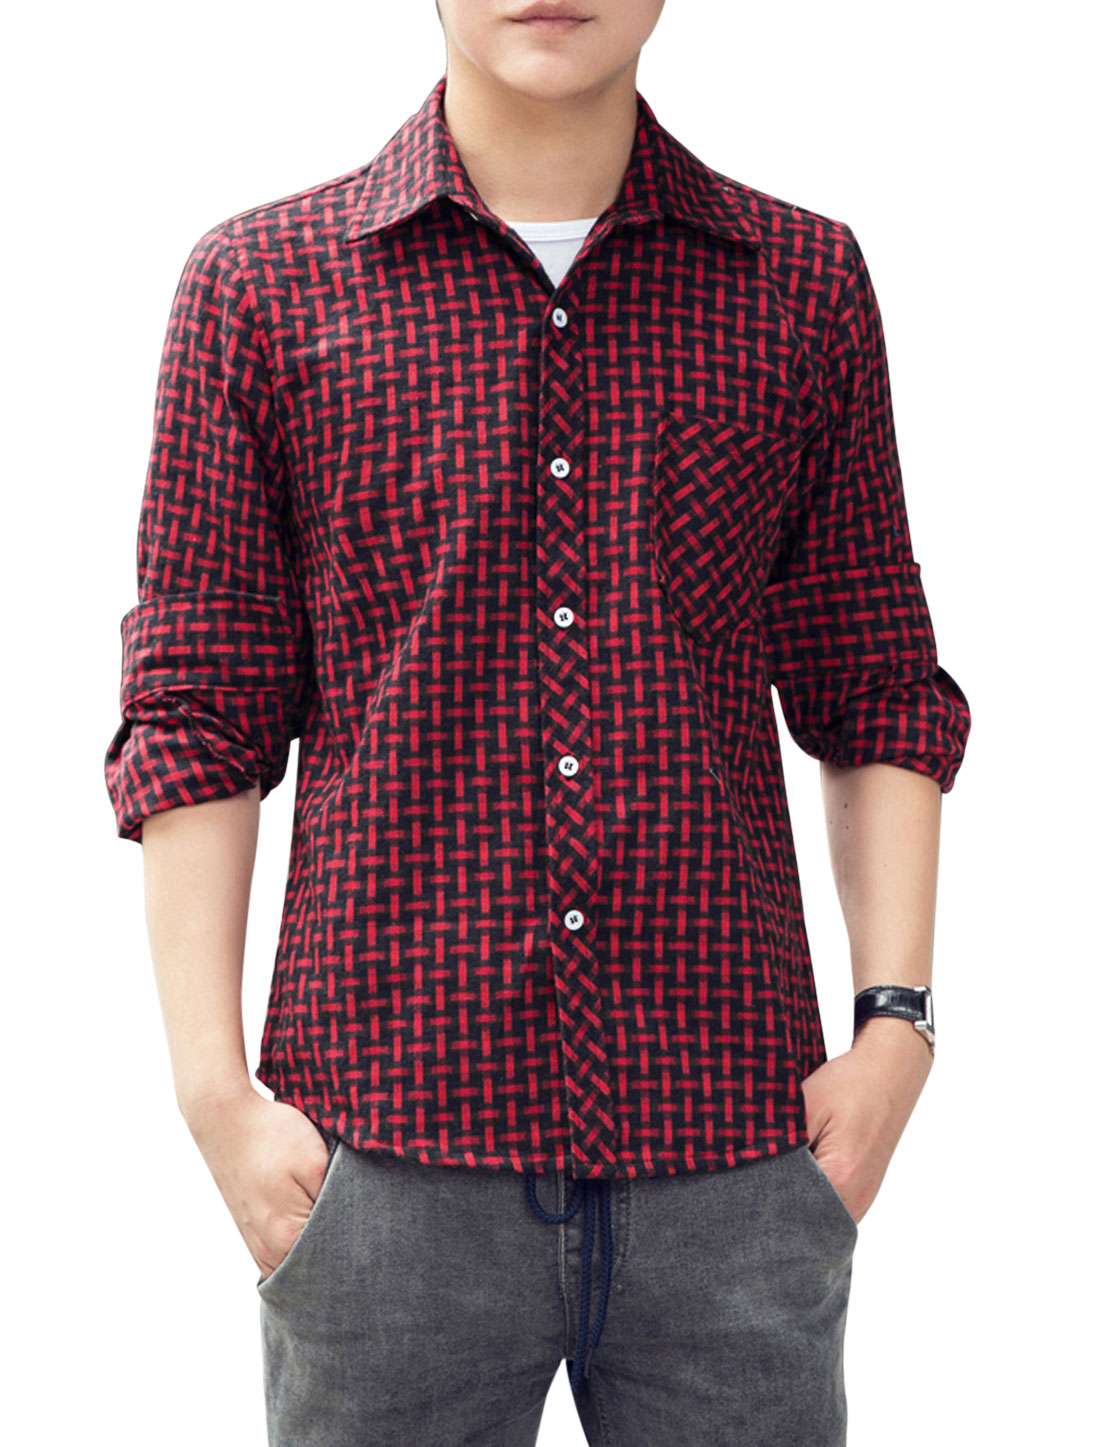 Slim Fit Point Collar Round Hem Casual Shirt for Men Red Black M